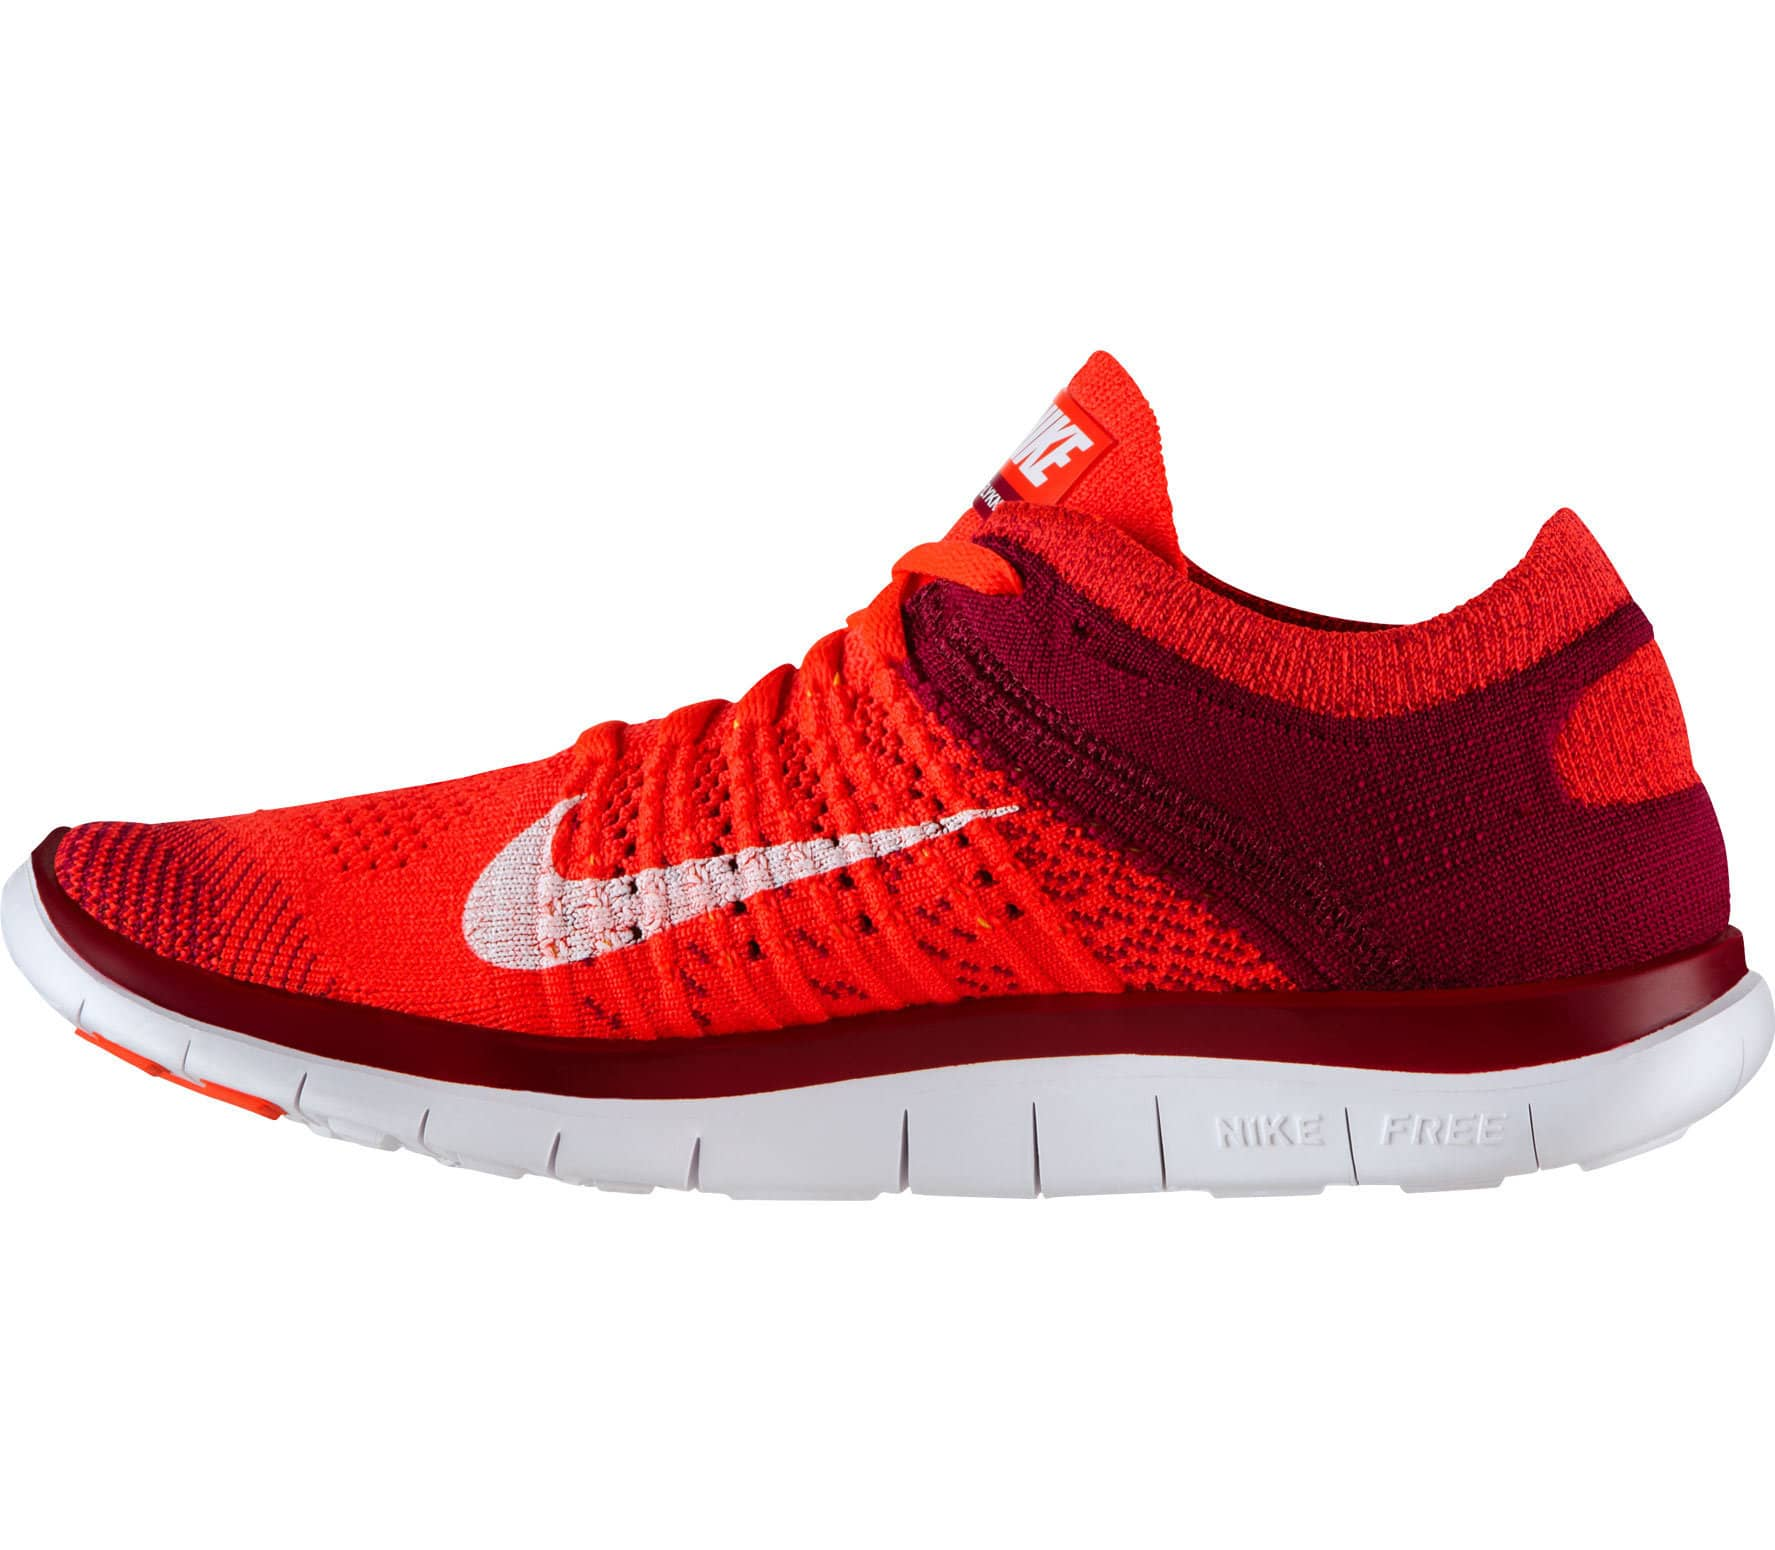 nike free flyknit 4 0 damen laufschuh rot wei im. Black Bedroom Furniture Sets. Home Design Ideas